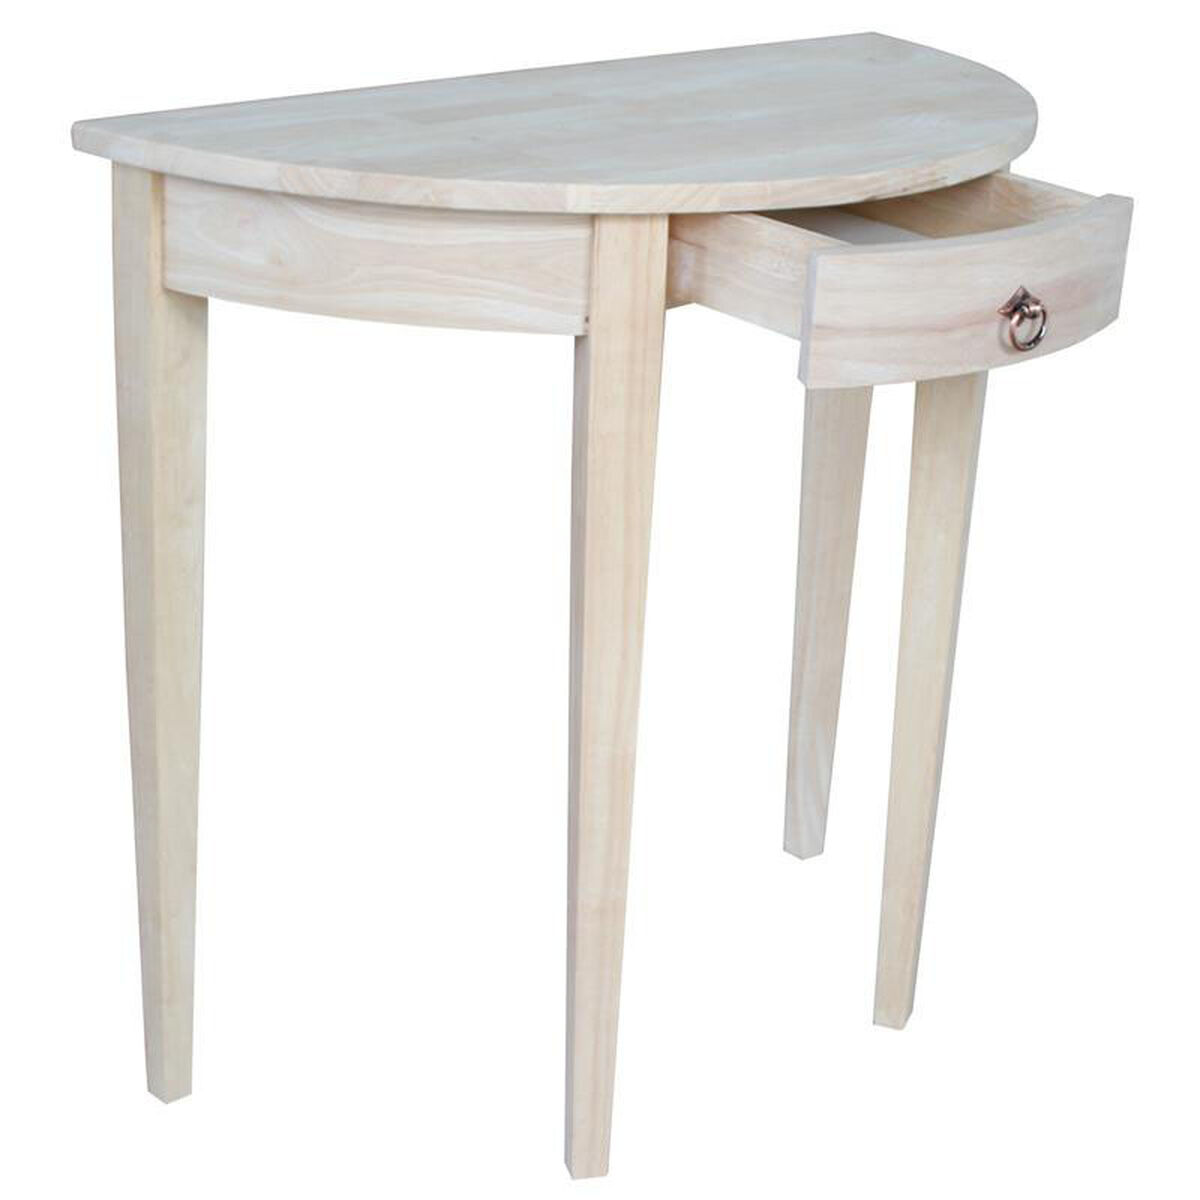 Our Butcher Block Top Solid Parawood 32 W X 31 H Half Round